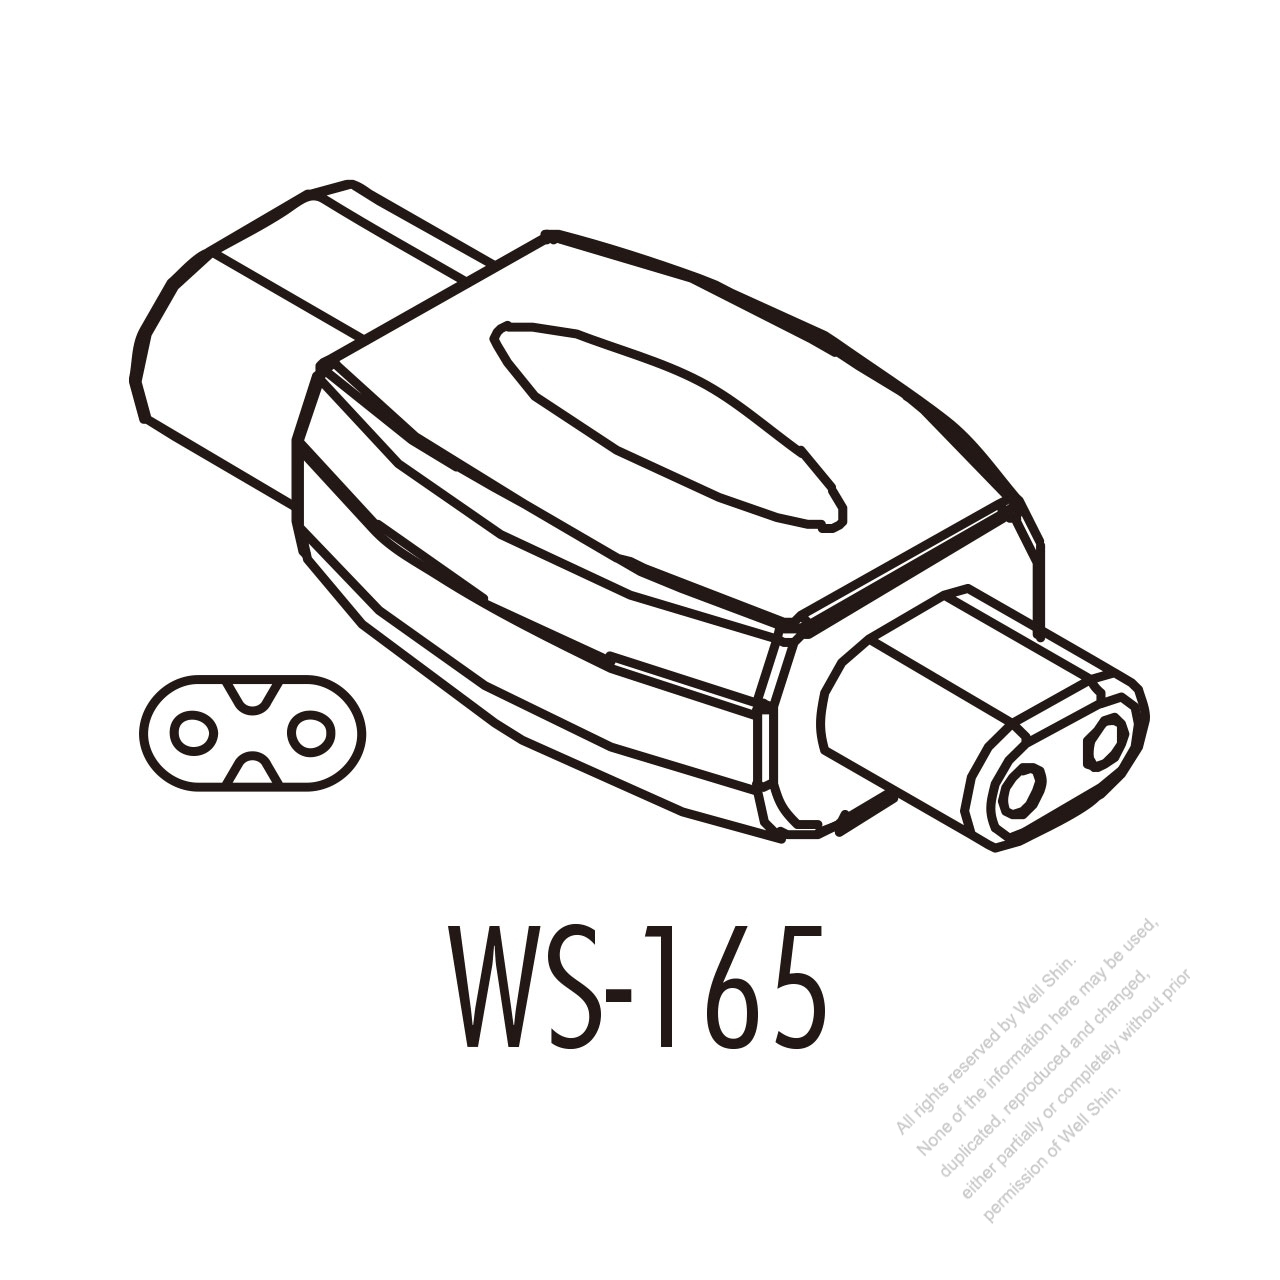 Adapter Plug Iec 320 Sheet C Inlet To C1 Female Connector